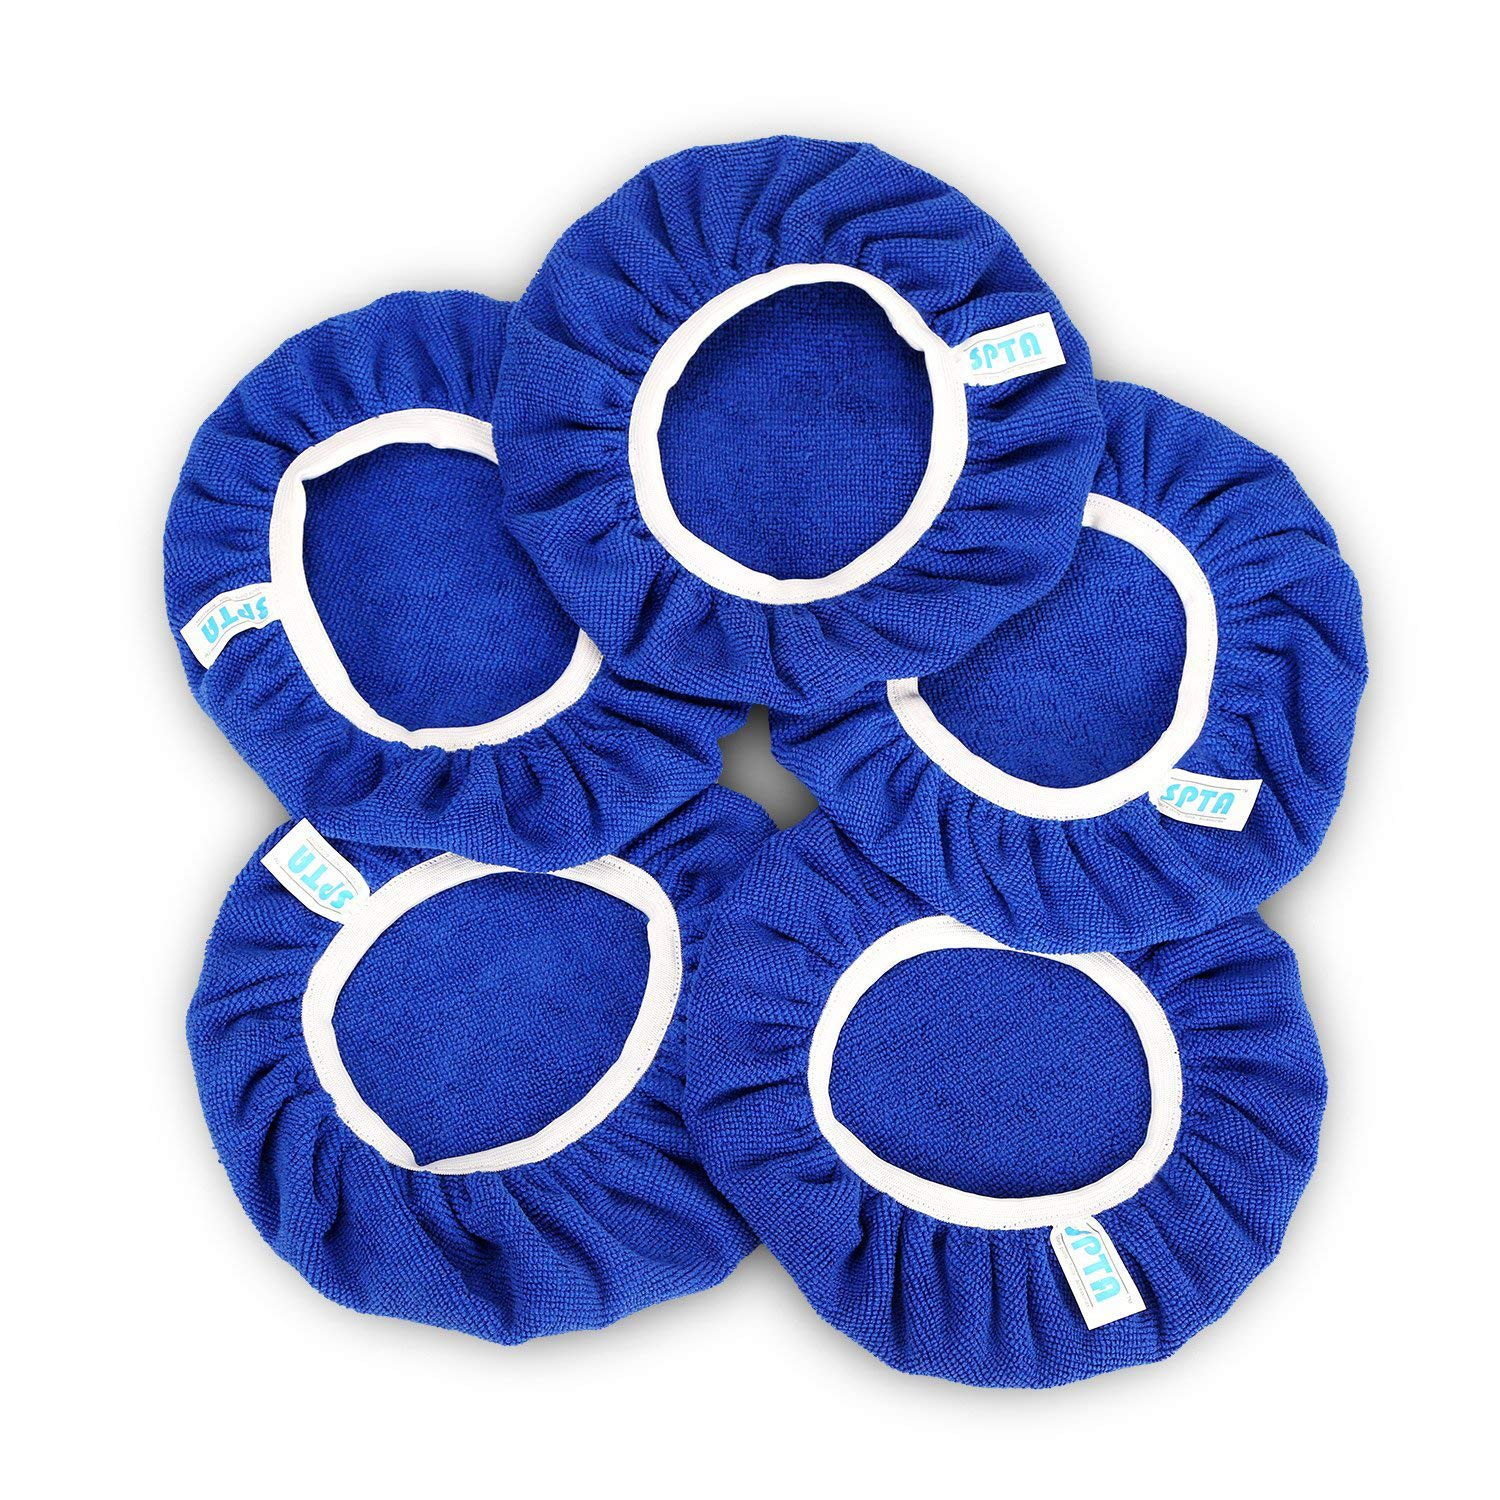 SPTA 9 Inch & 10 Inch Car Polisher Pad Bonnet Soft Microfiber Polishing Bonnet Buffing Pad Cover For 9'' And 10'' Car Polisher Pack of 5Pcs